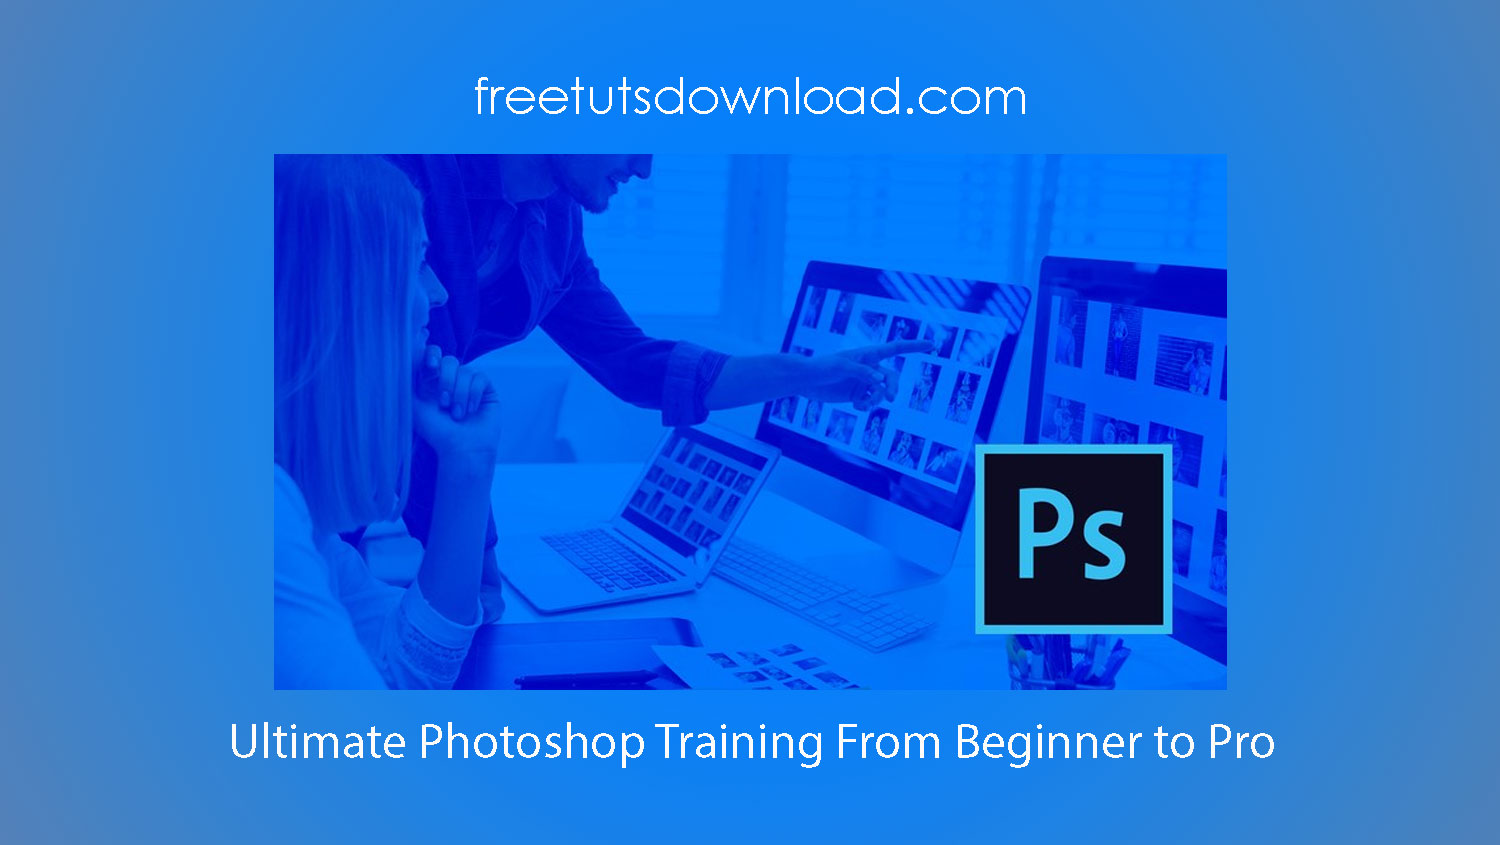 Ultimate Photoshop Training From Beginner to Pro Free Download